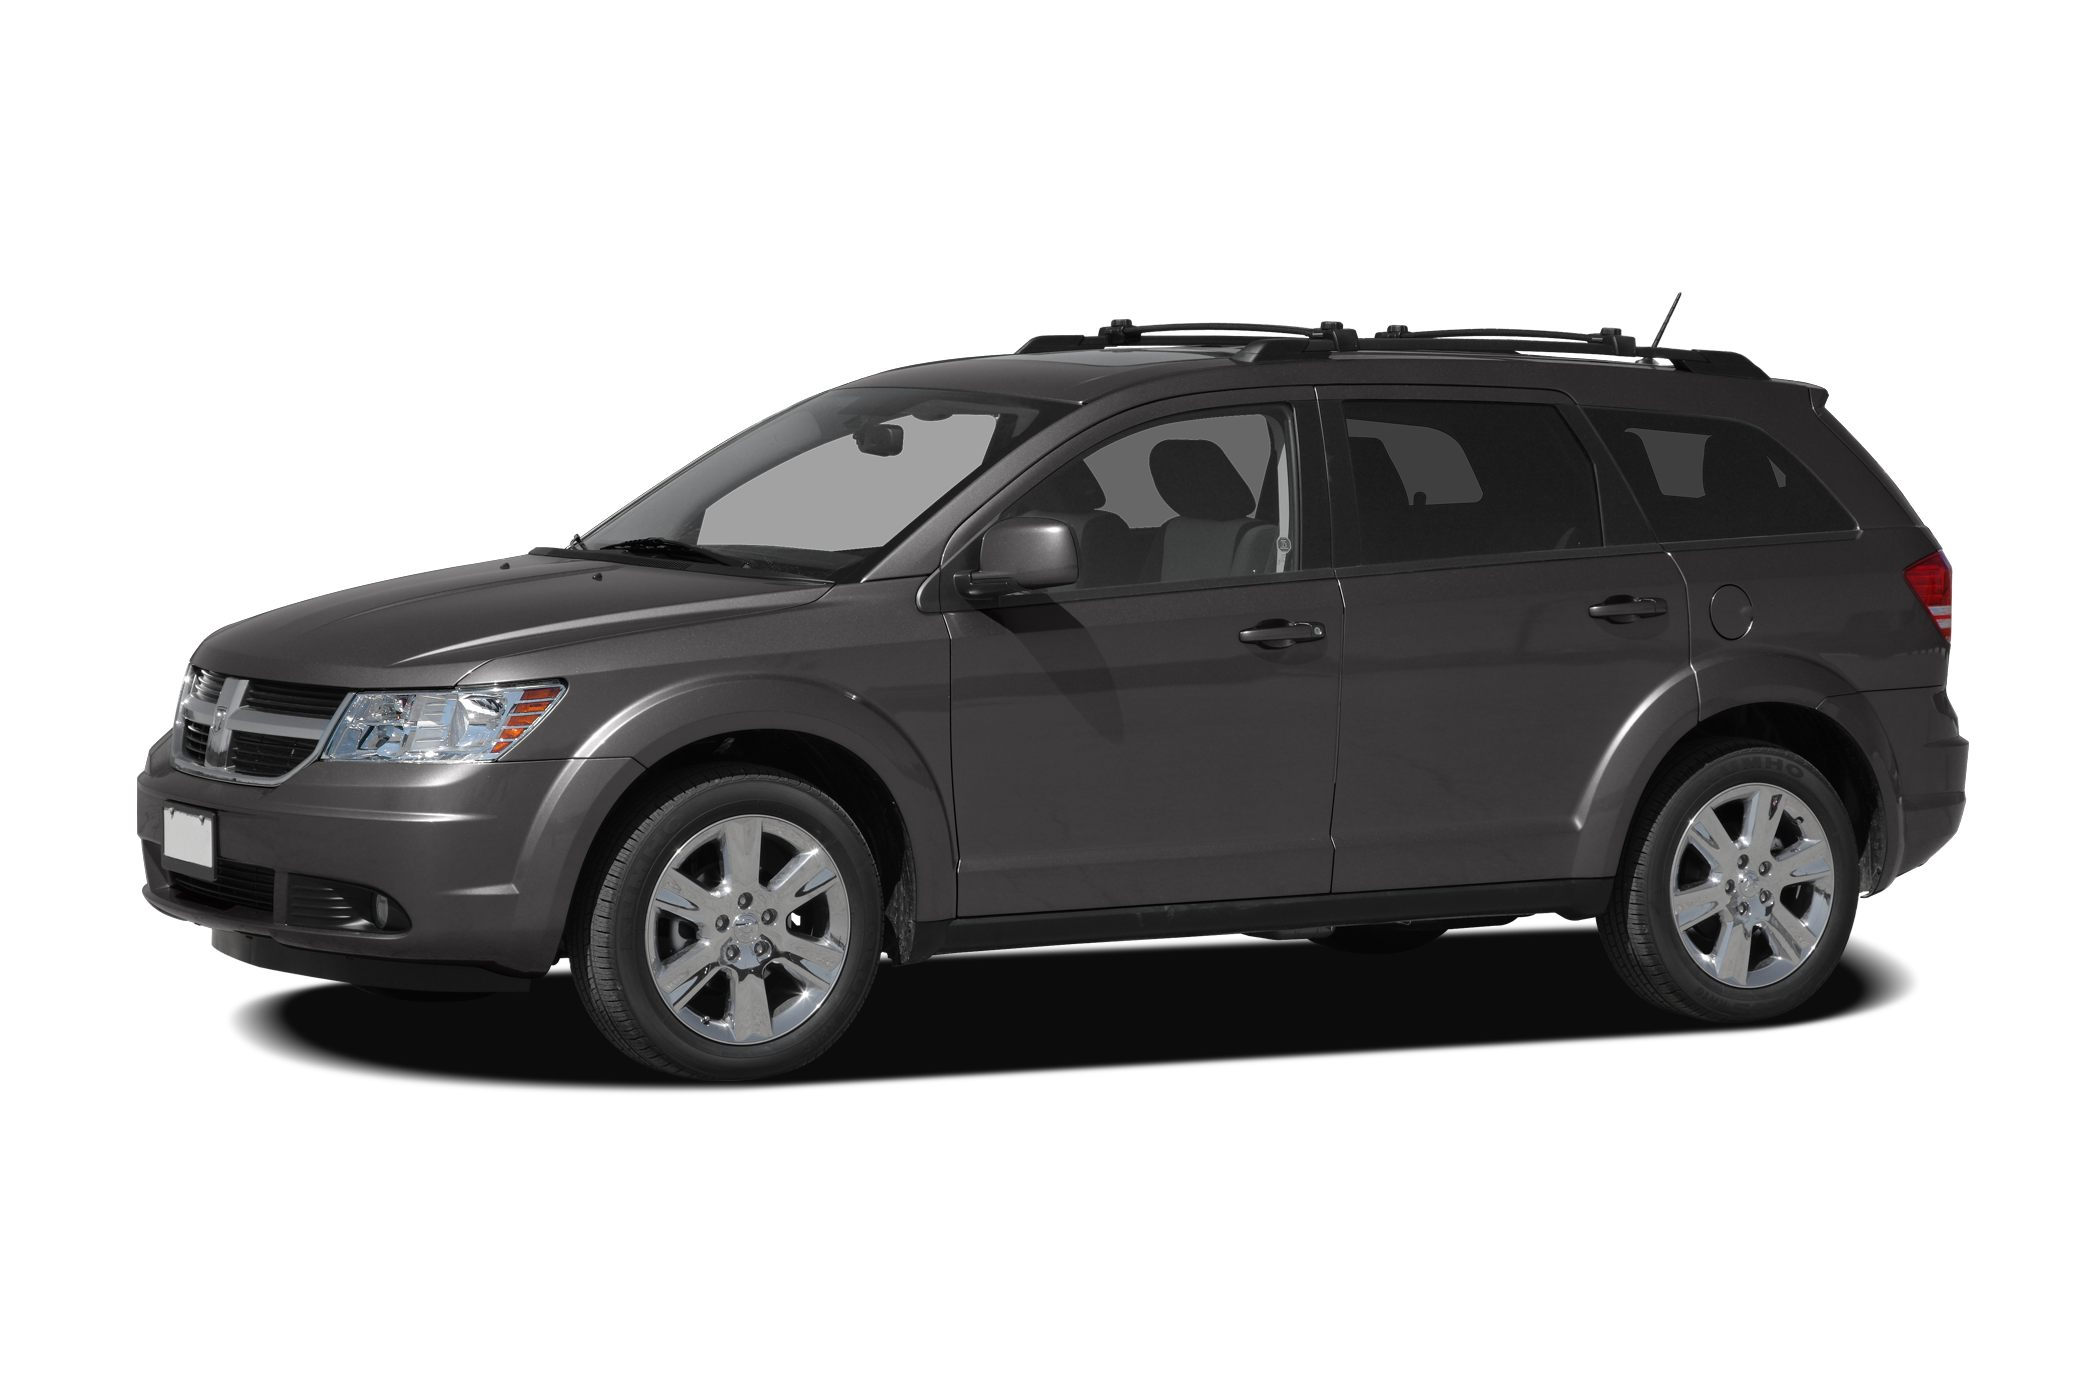 2009 Dodge Journey SXT SUV for sale in Neosho for $11,900 with 79,600 miles